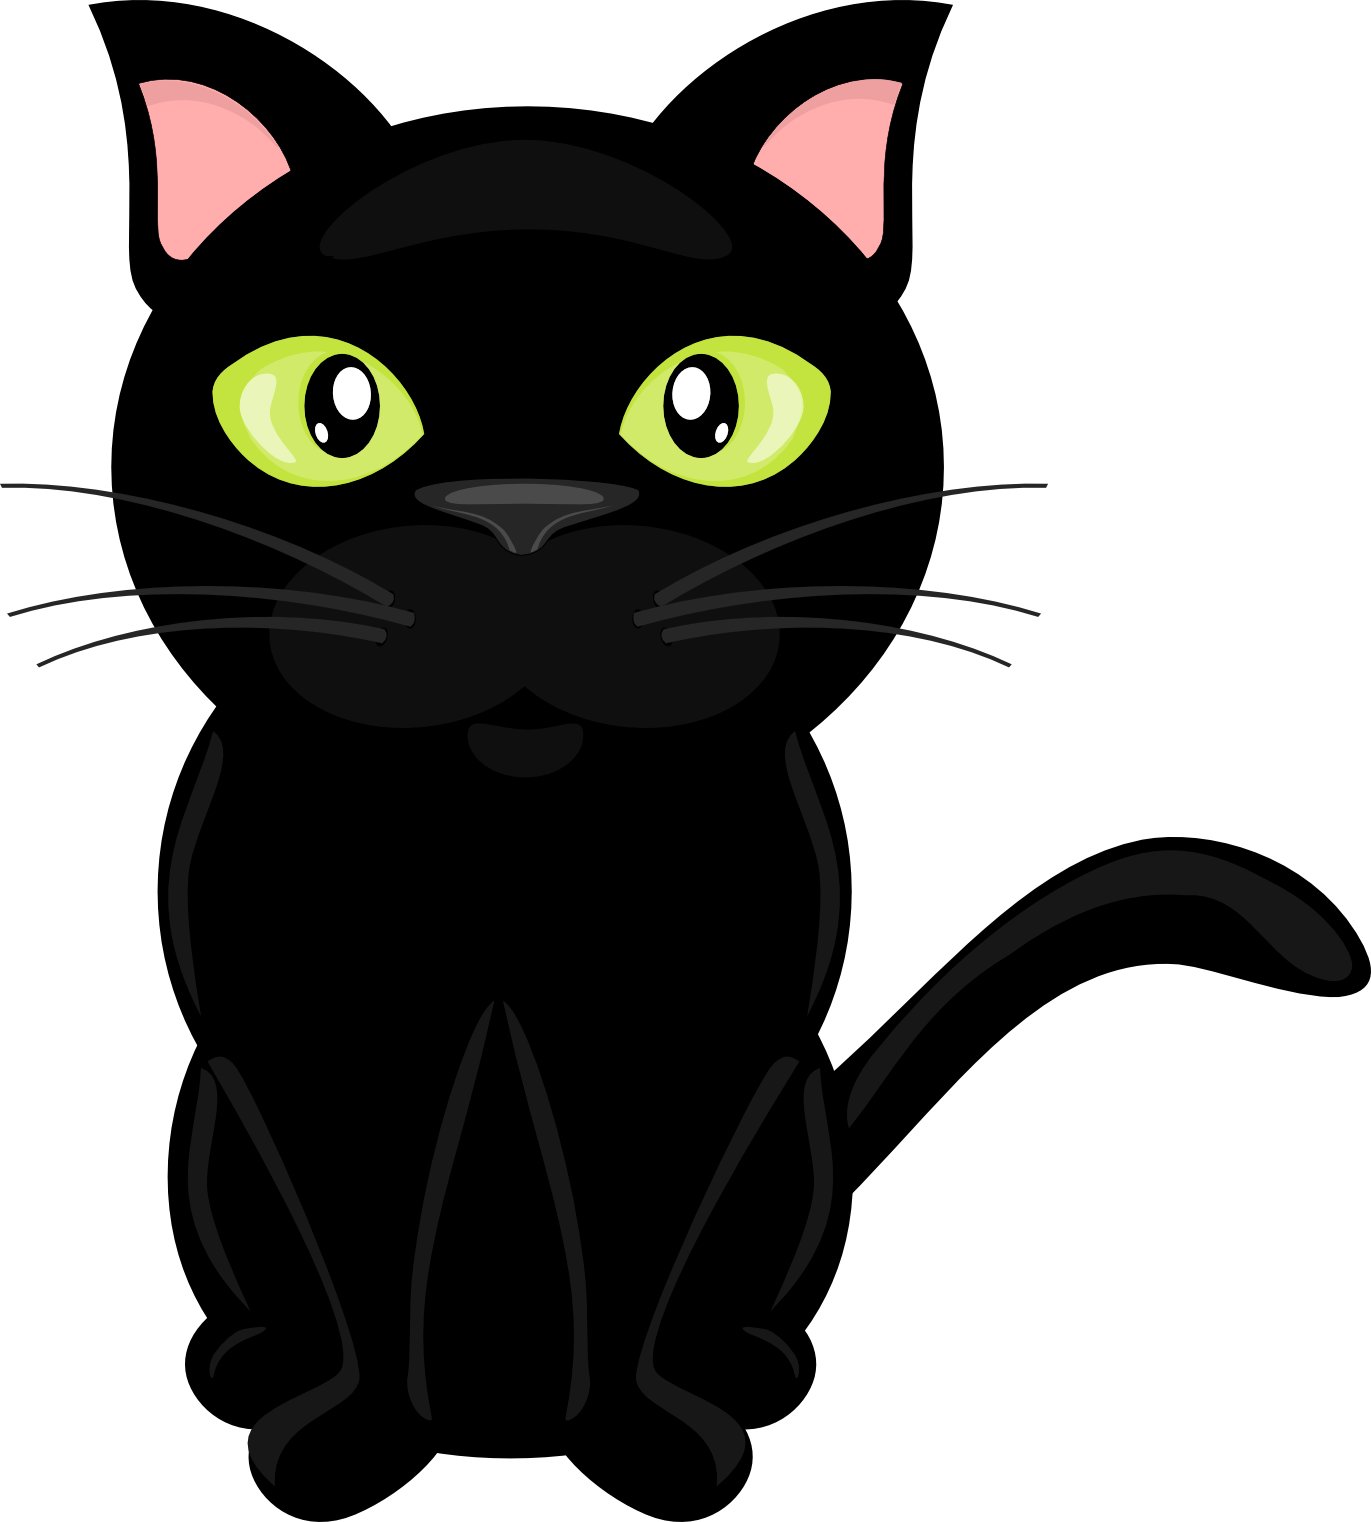 Cute black cat clipart. Cats png free images